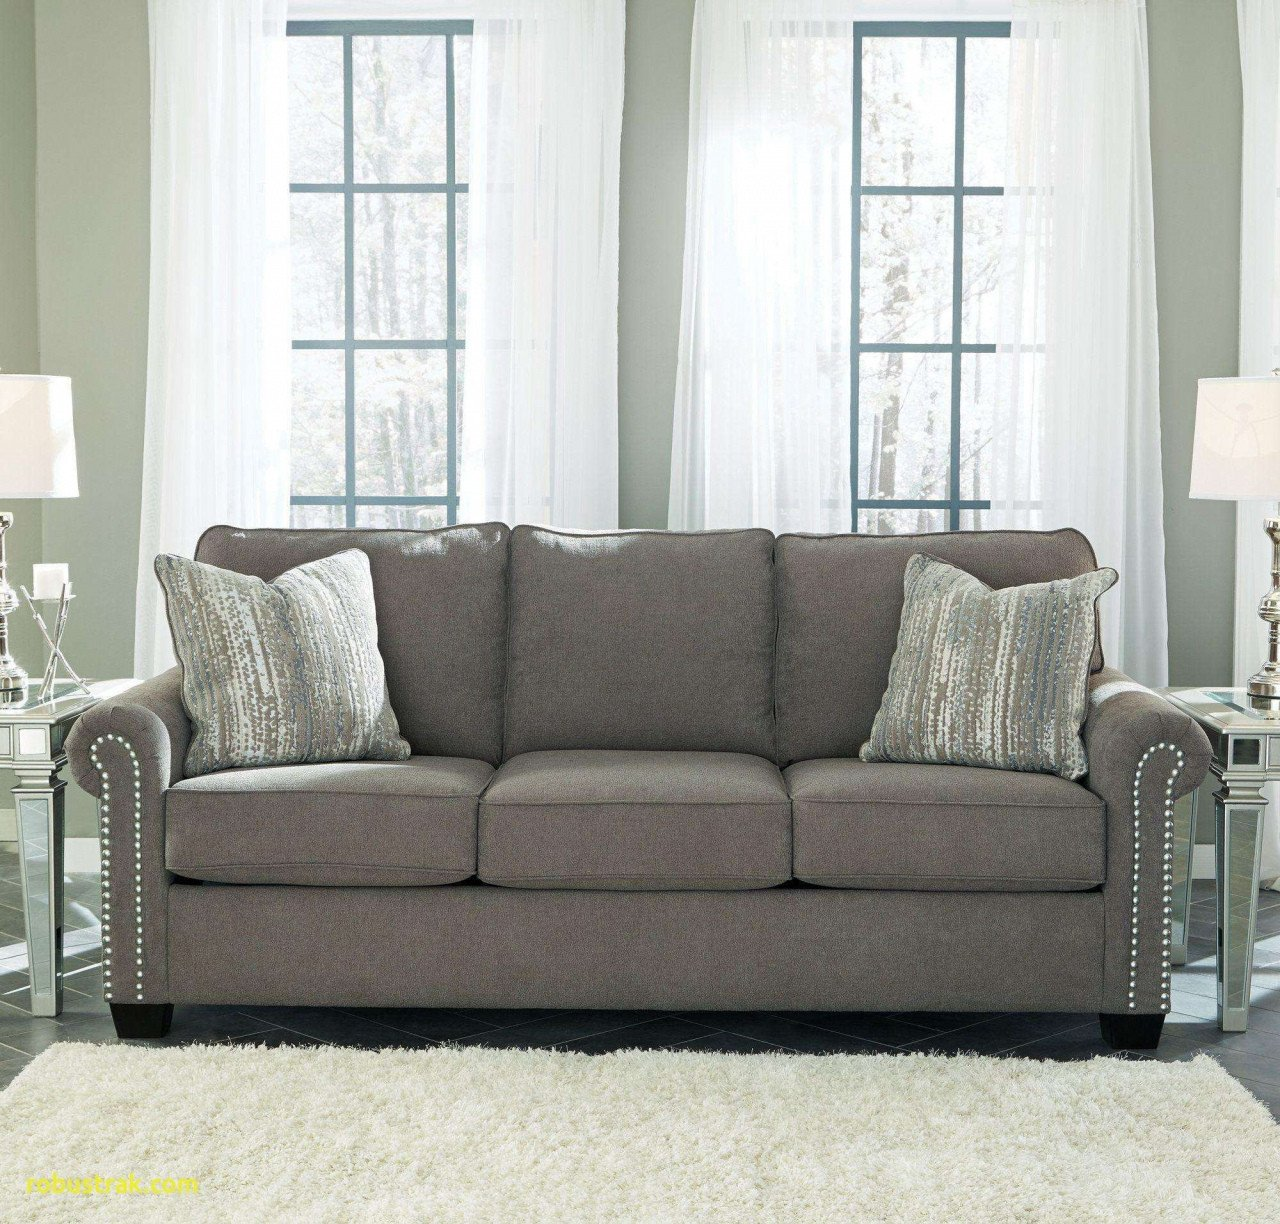 Grey and Burgundy Bedroom Fresh Gray Couch Living Room — Procura Home Blog